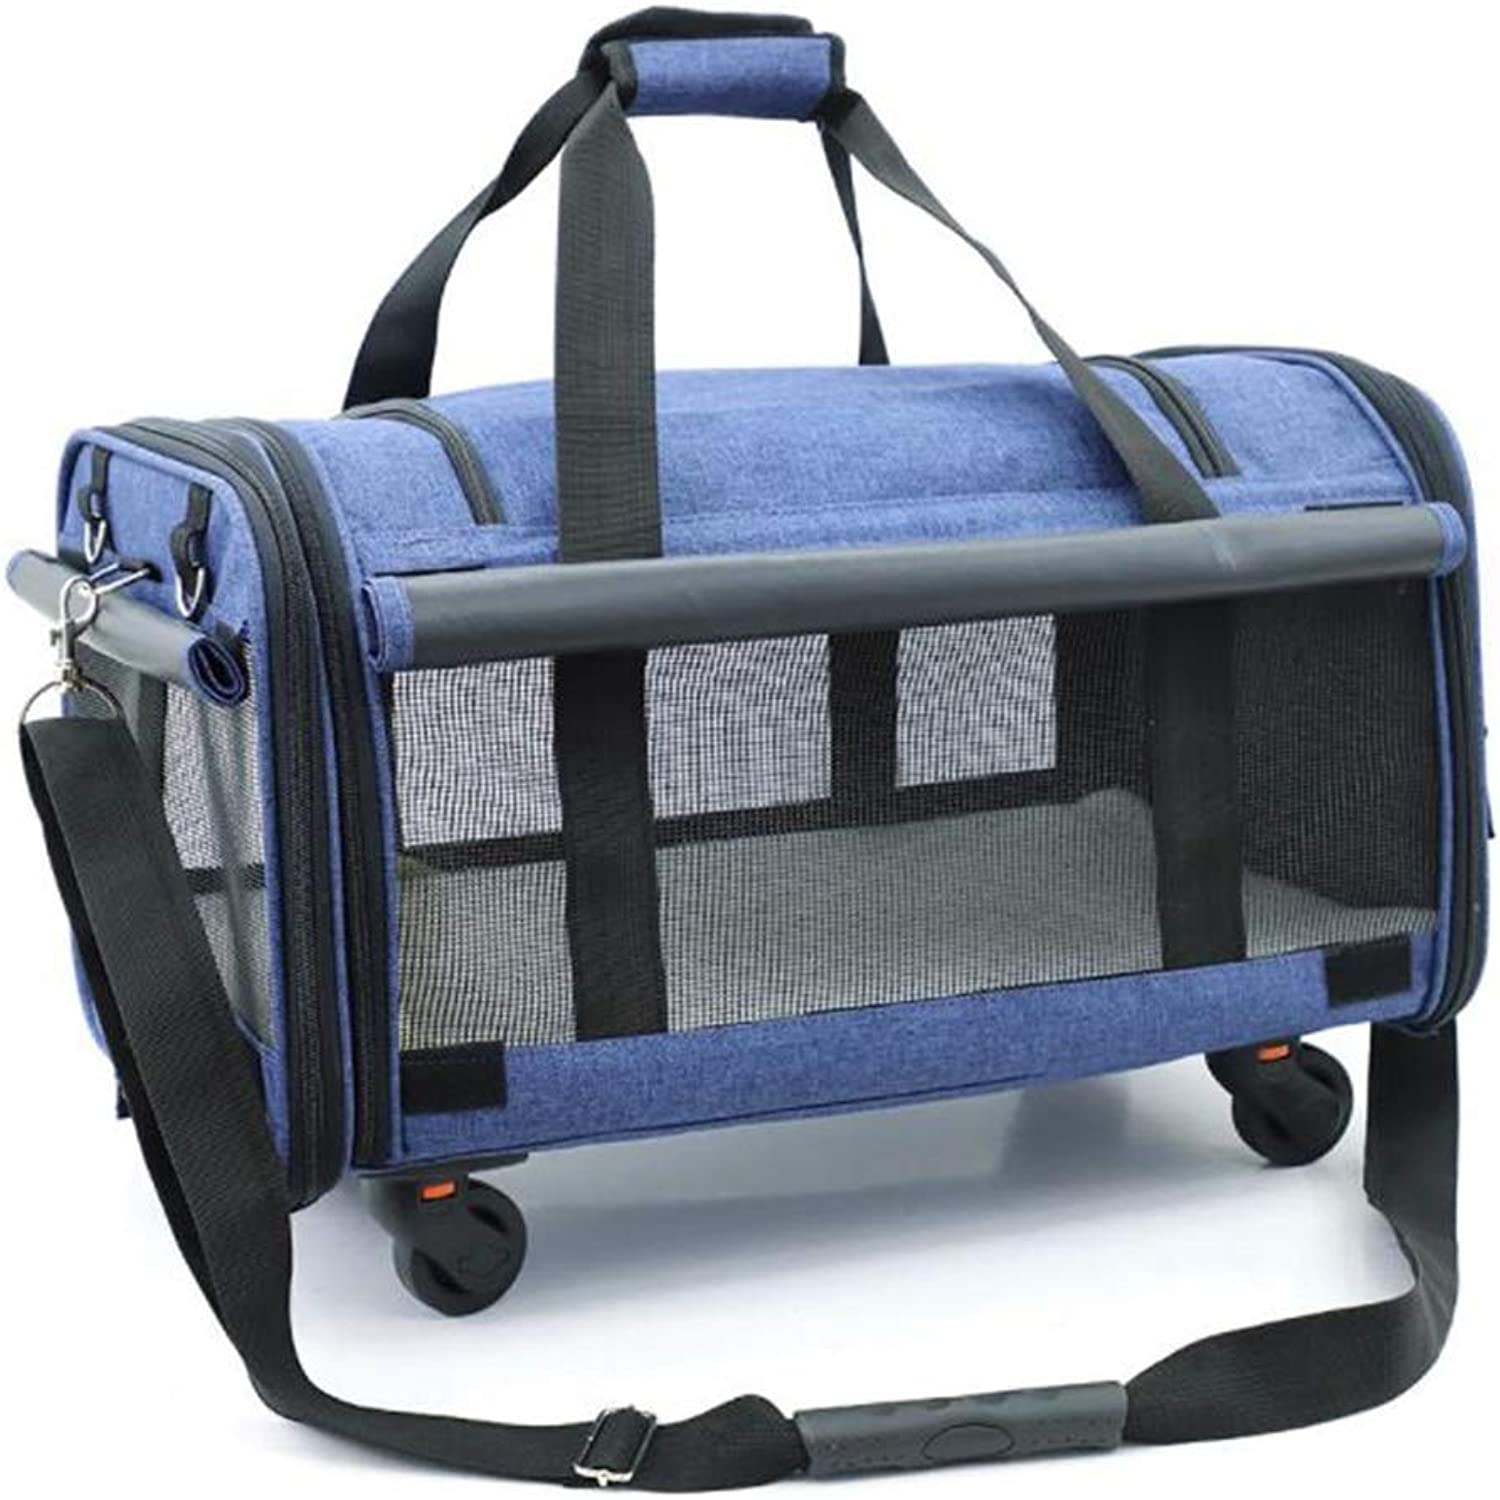 Outing Breathable Pet Travel Bag Portable Pet Cage Portable Pulley Bag (color   bluee)